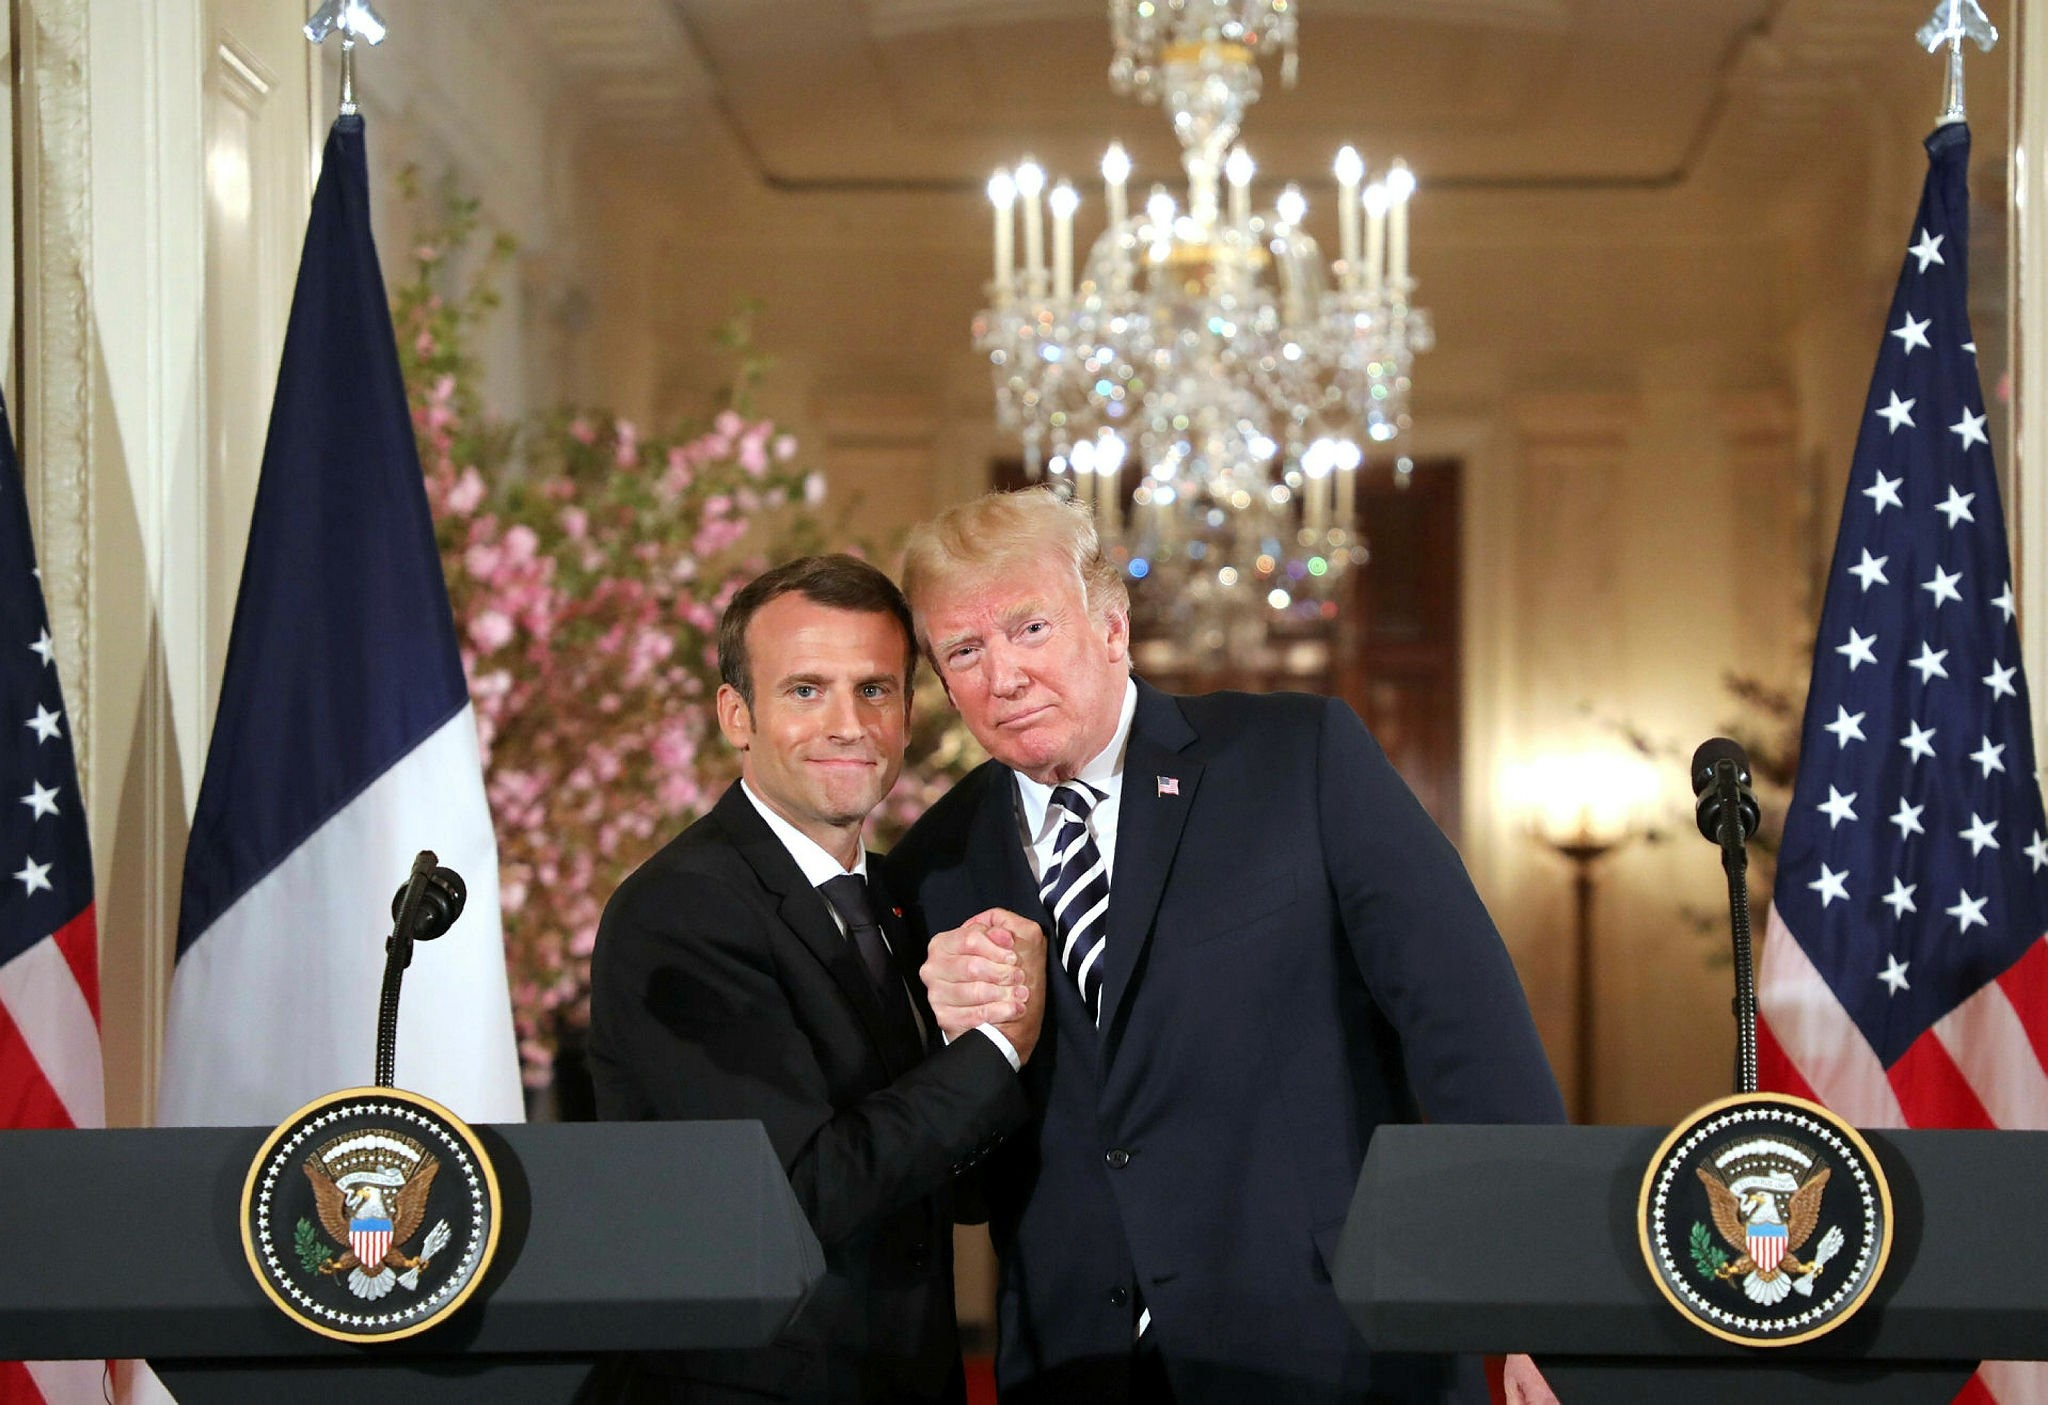 U.S. President Donald Trump and French President Emmanuel Macron hold a joint press conference at the White House, Washington, April 24.